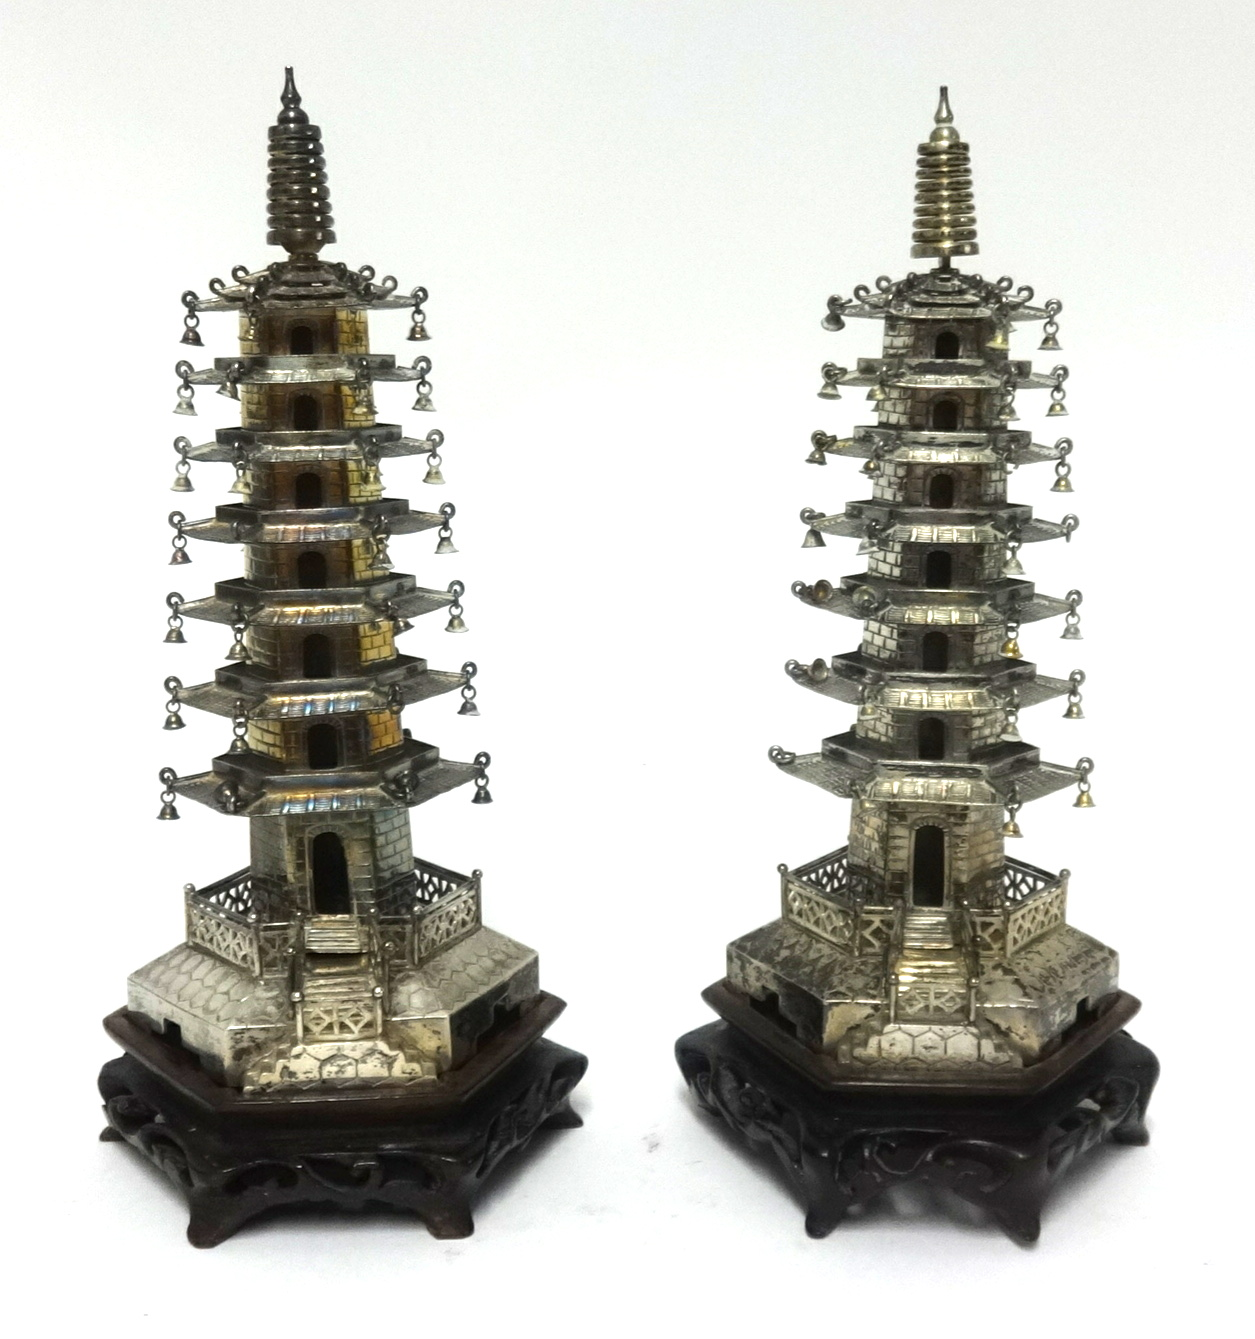 Lot 031 - A pair of Chinese silver Pagoda's possibly by Wang Hing & Company, early 20th century; each composed